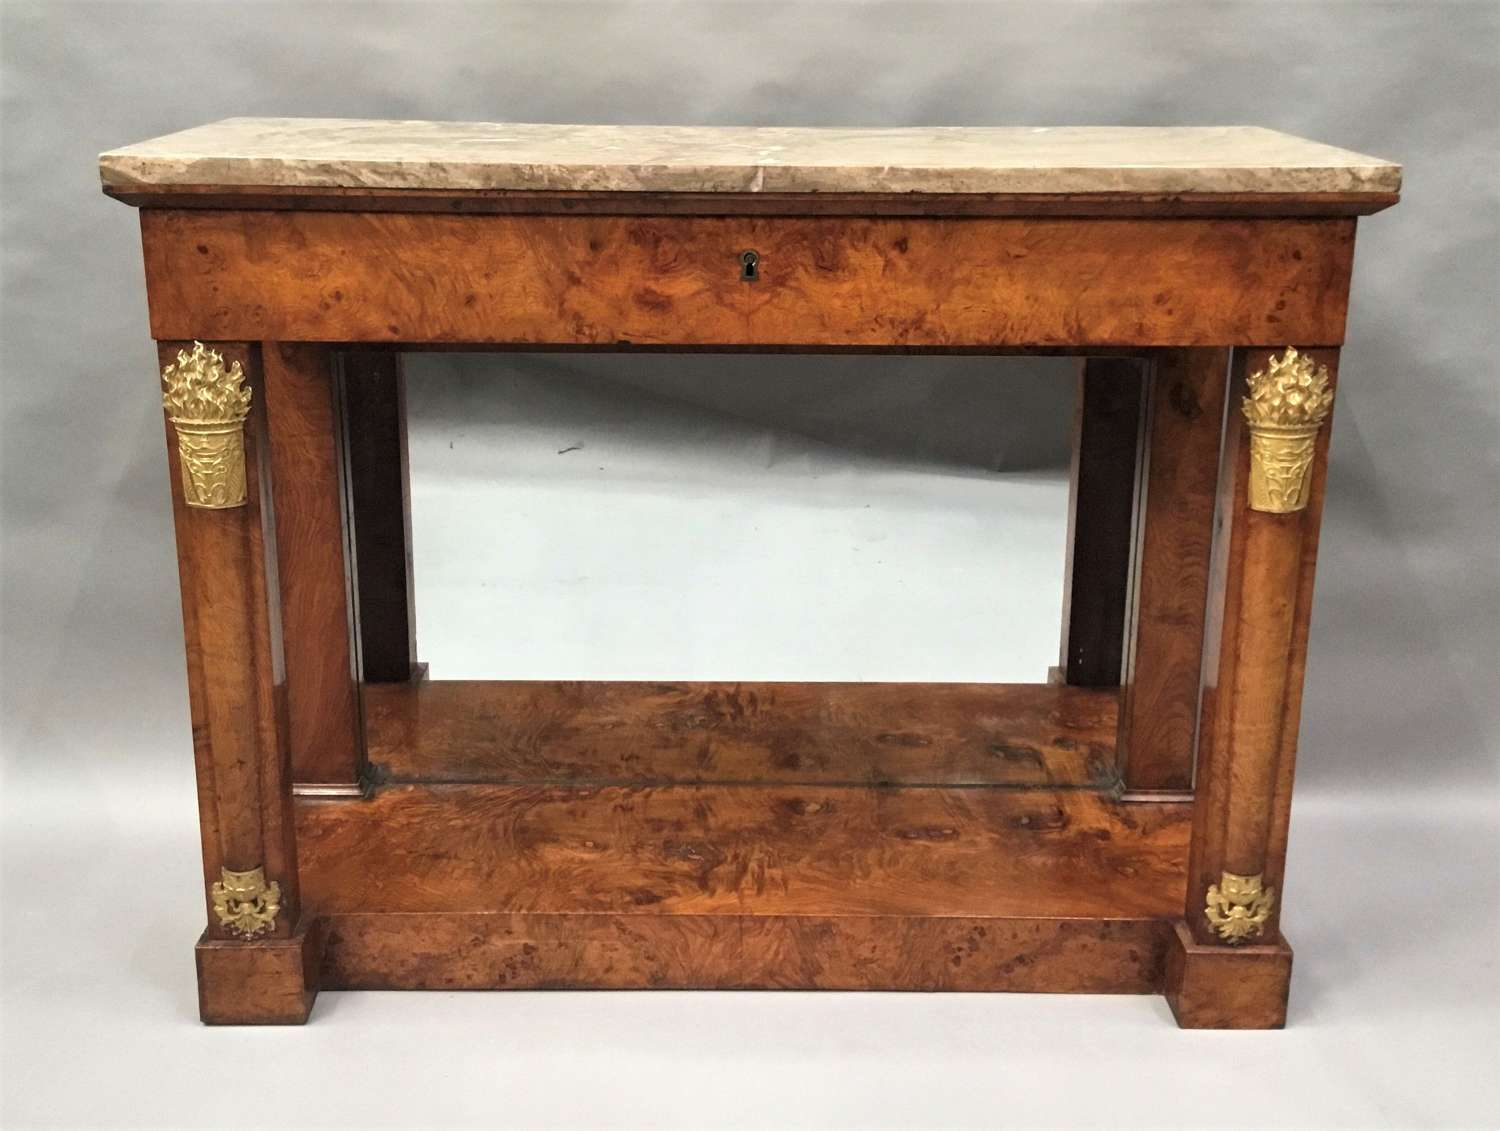 C19th Empire burr elm console table